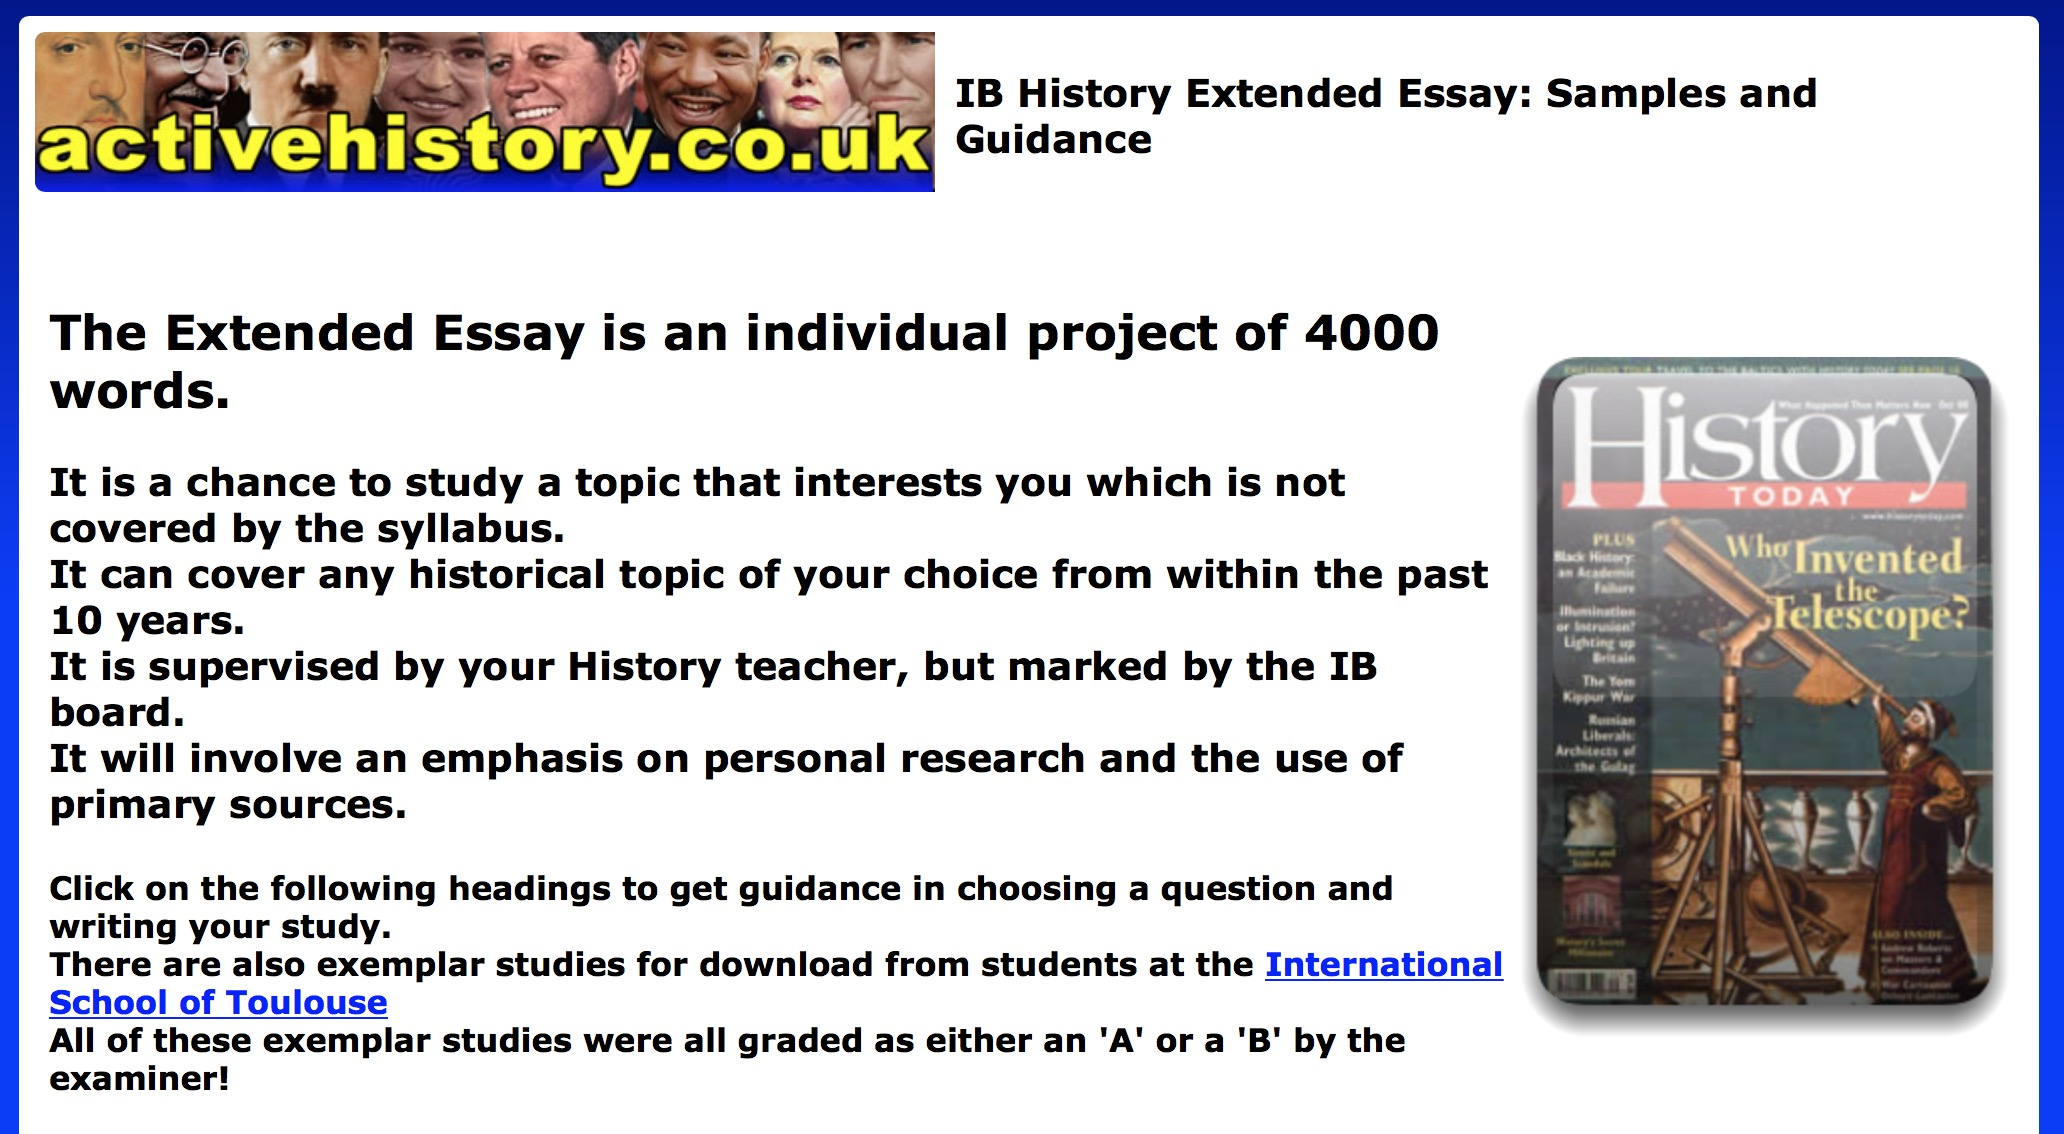 52 views - History Extended Essay Example